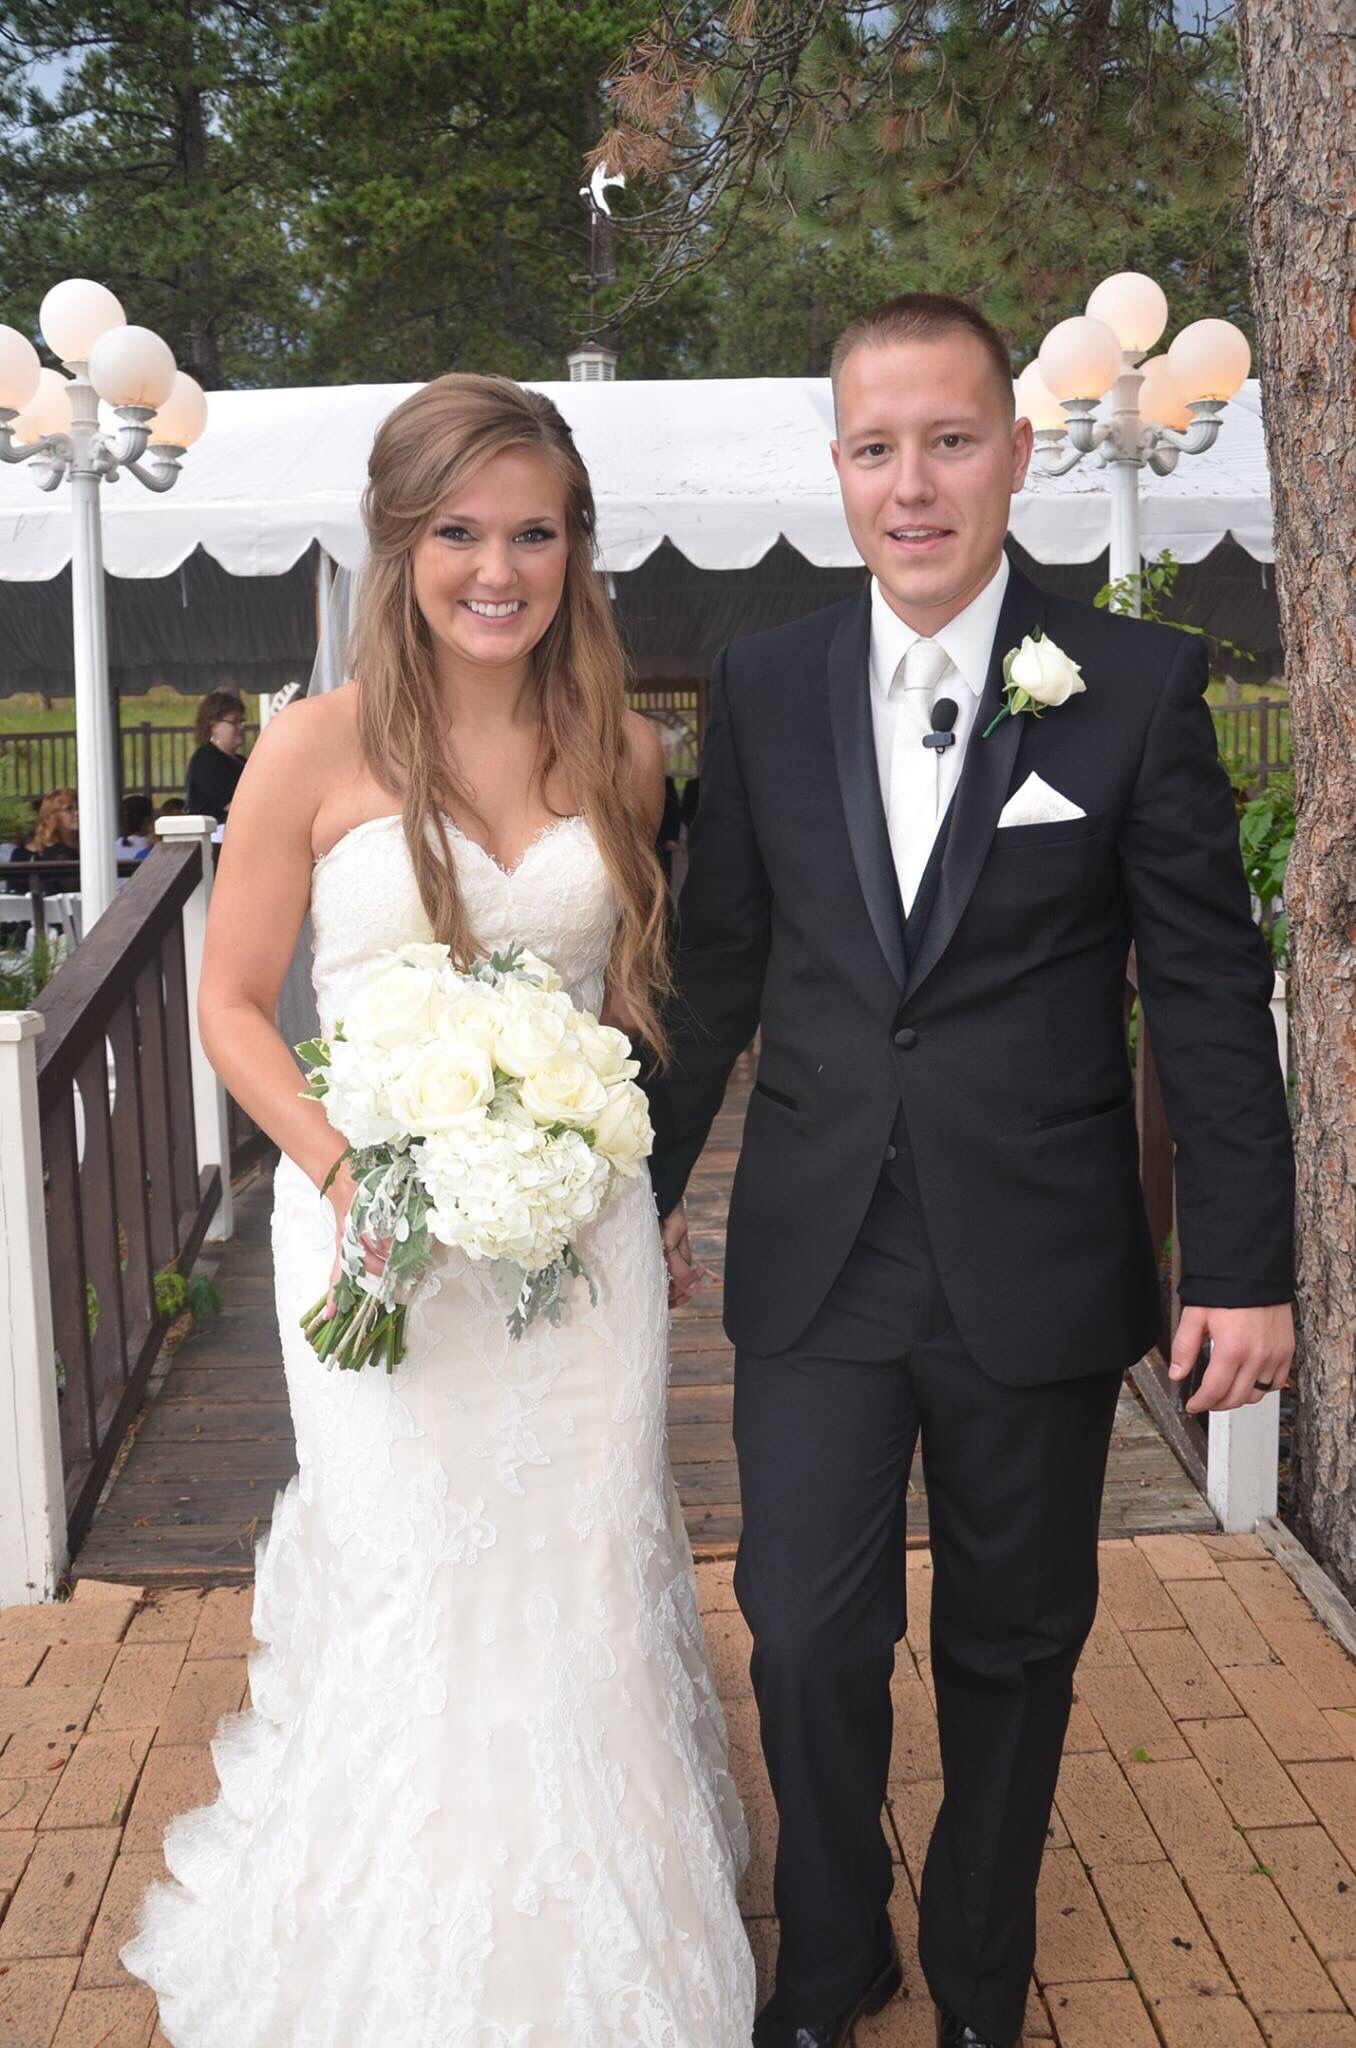 The new Mr and Mrs